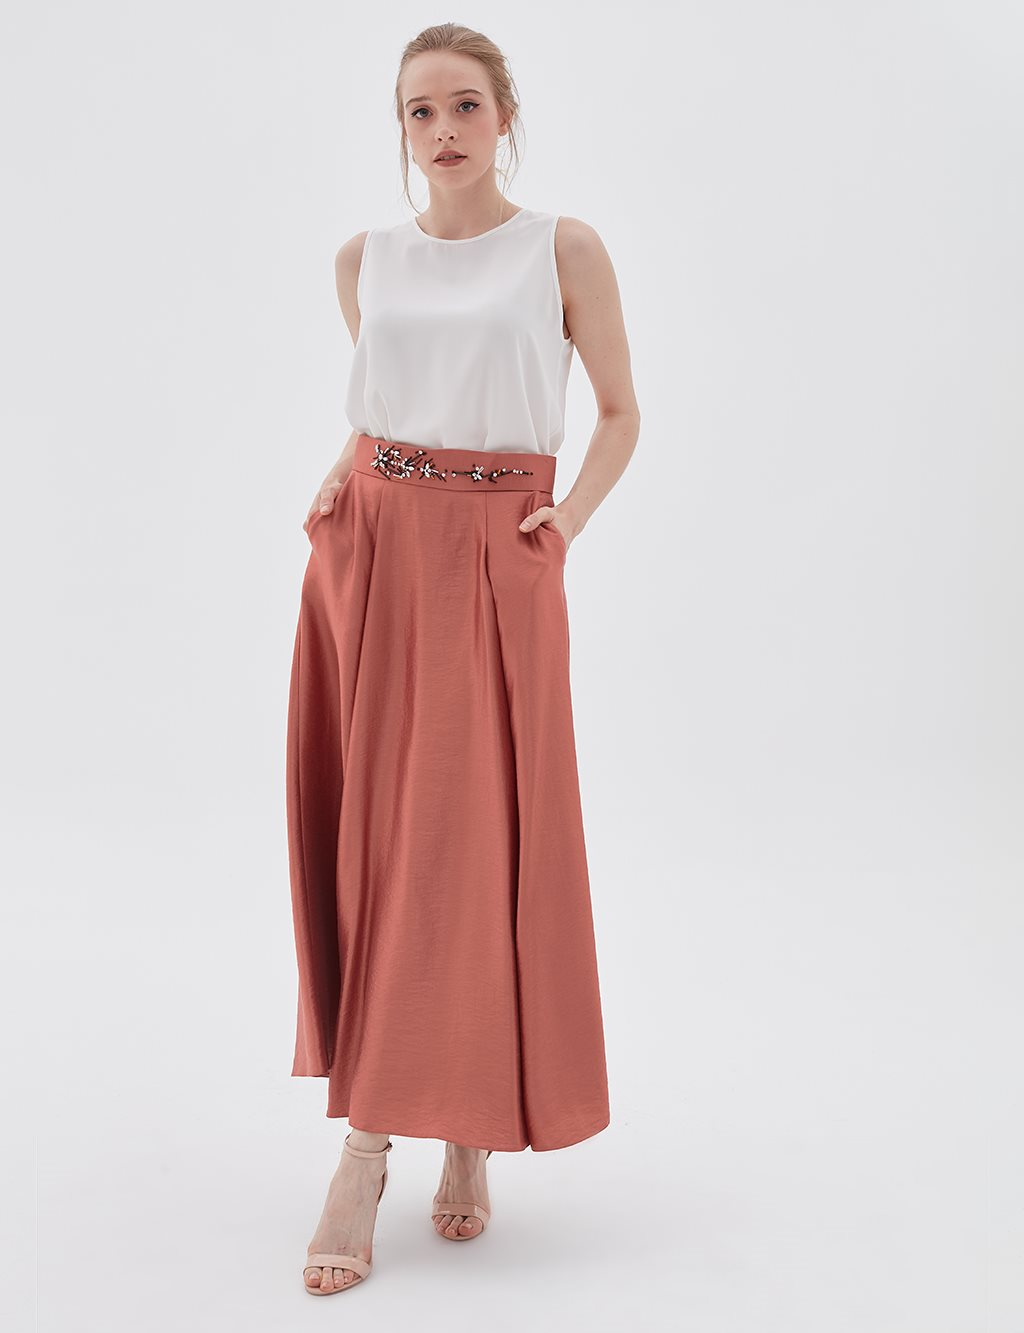 Pleated Skirt With Embroidered Belt B20 12050 Tile